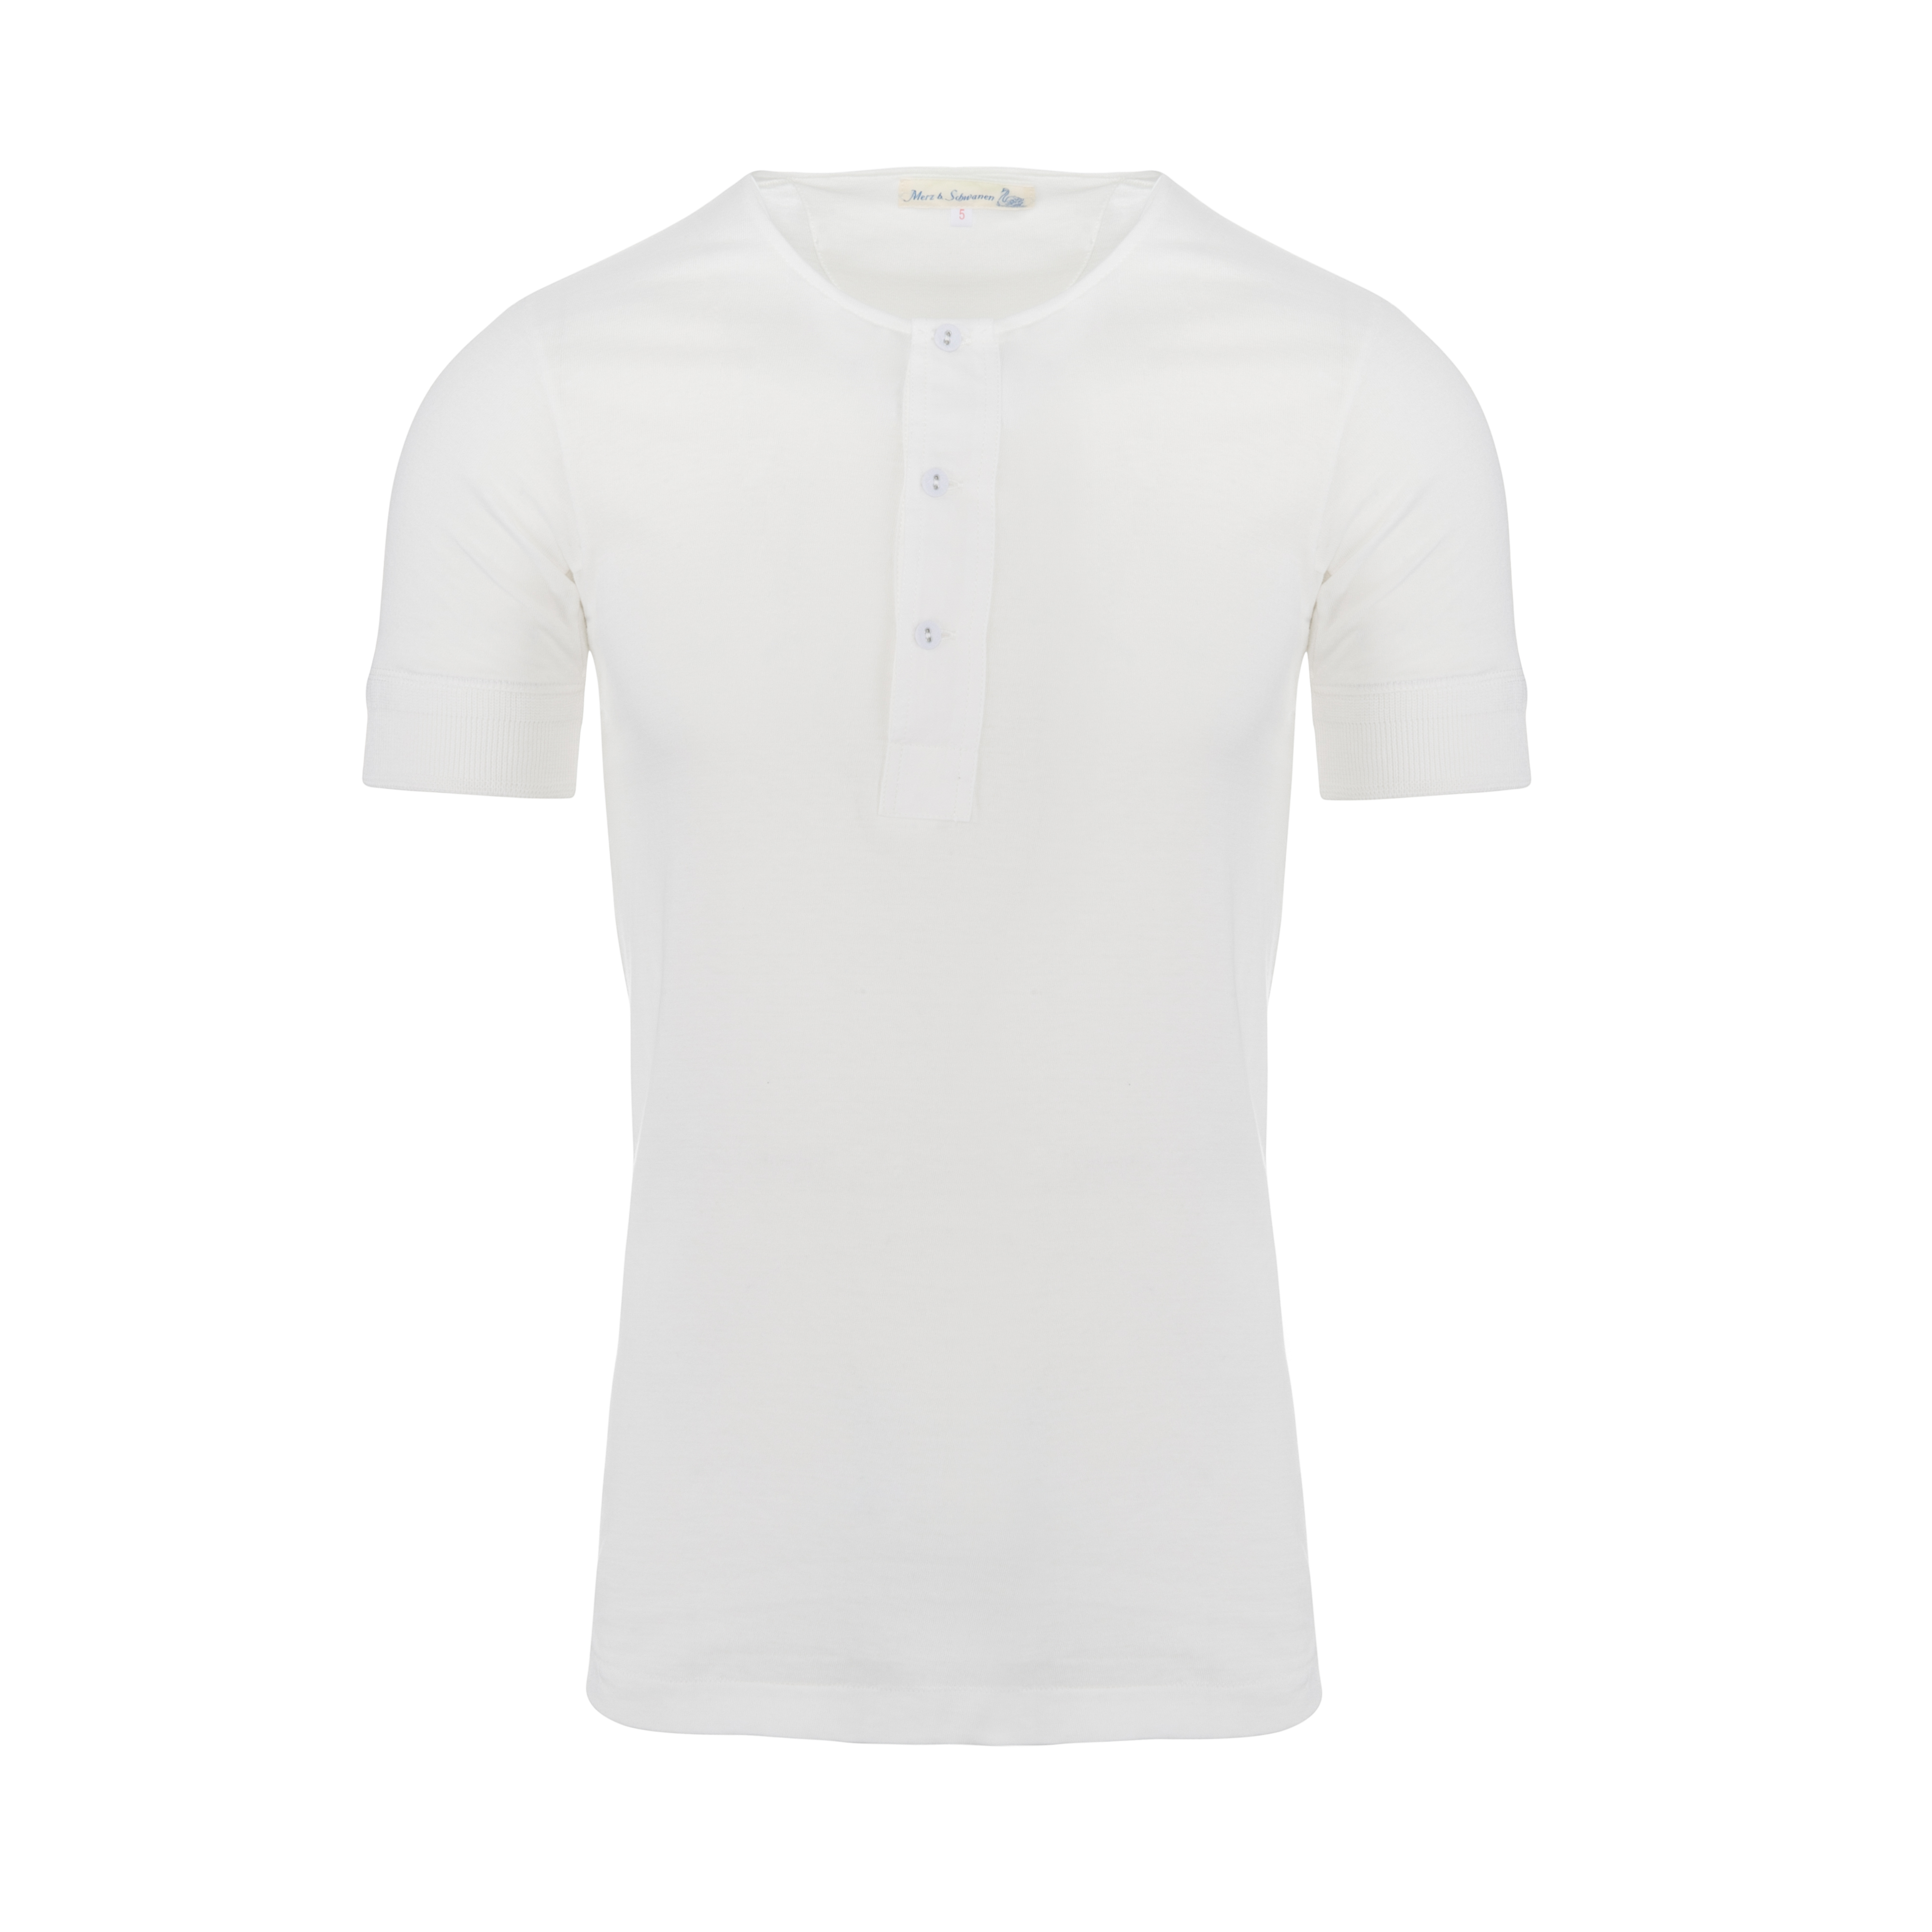 Henley 103 T-Shirt White